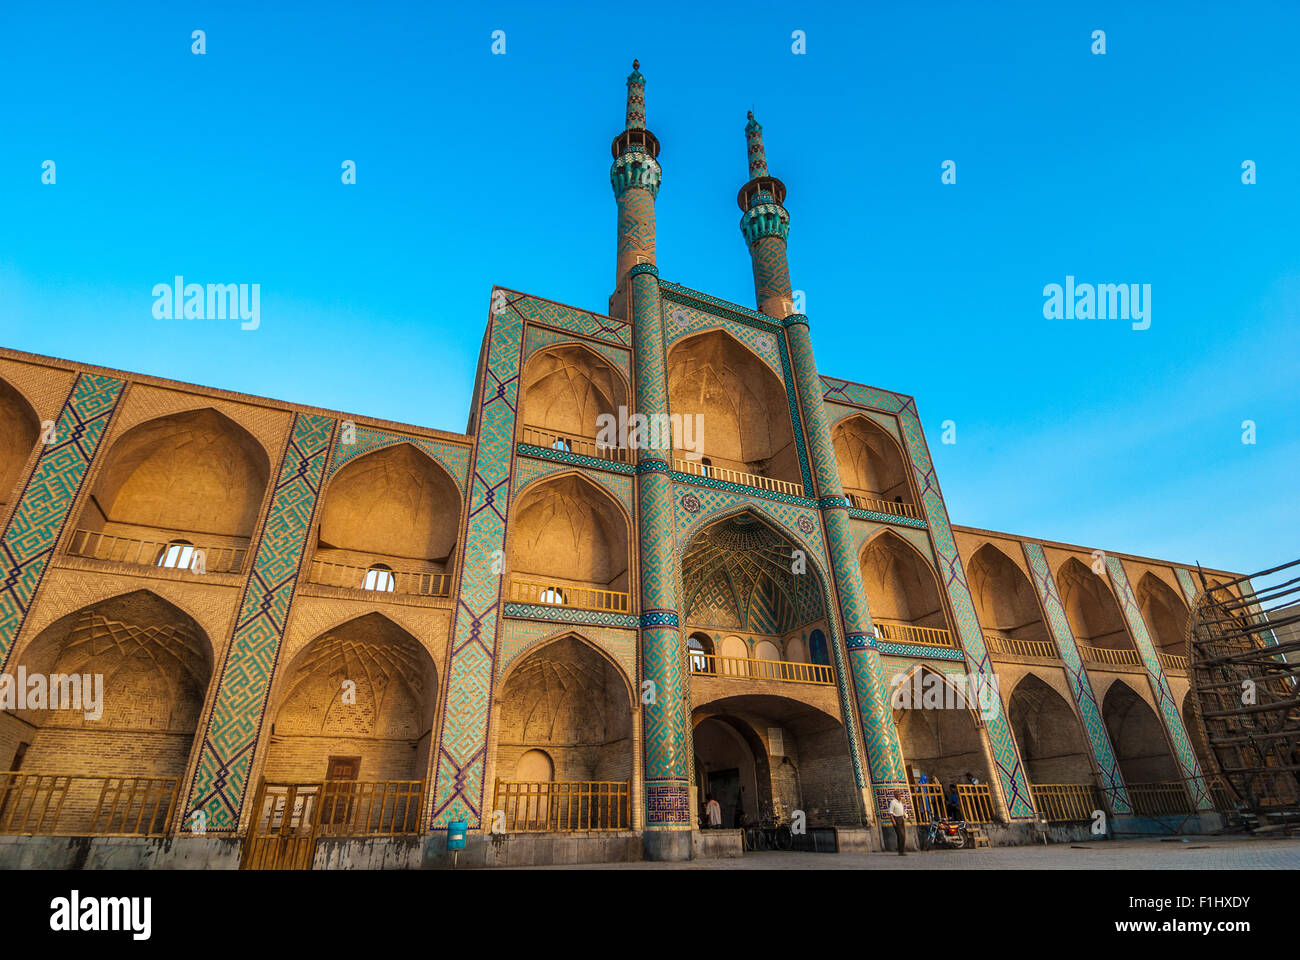 Ancient Persia Stock Photos & Ancient Persia Stock Images